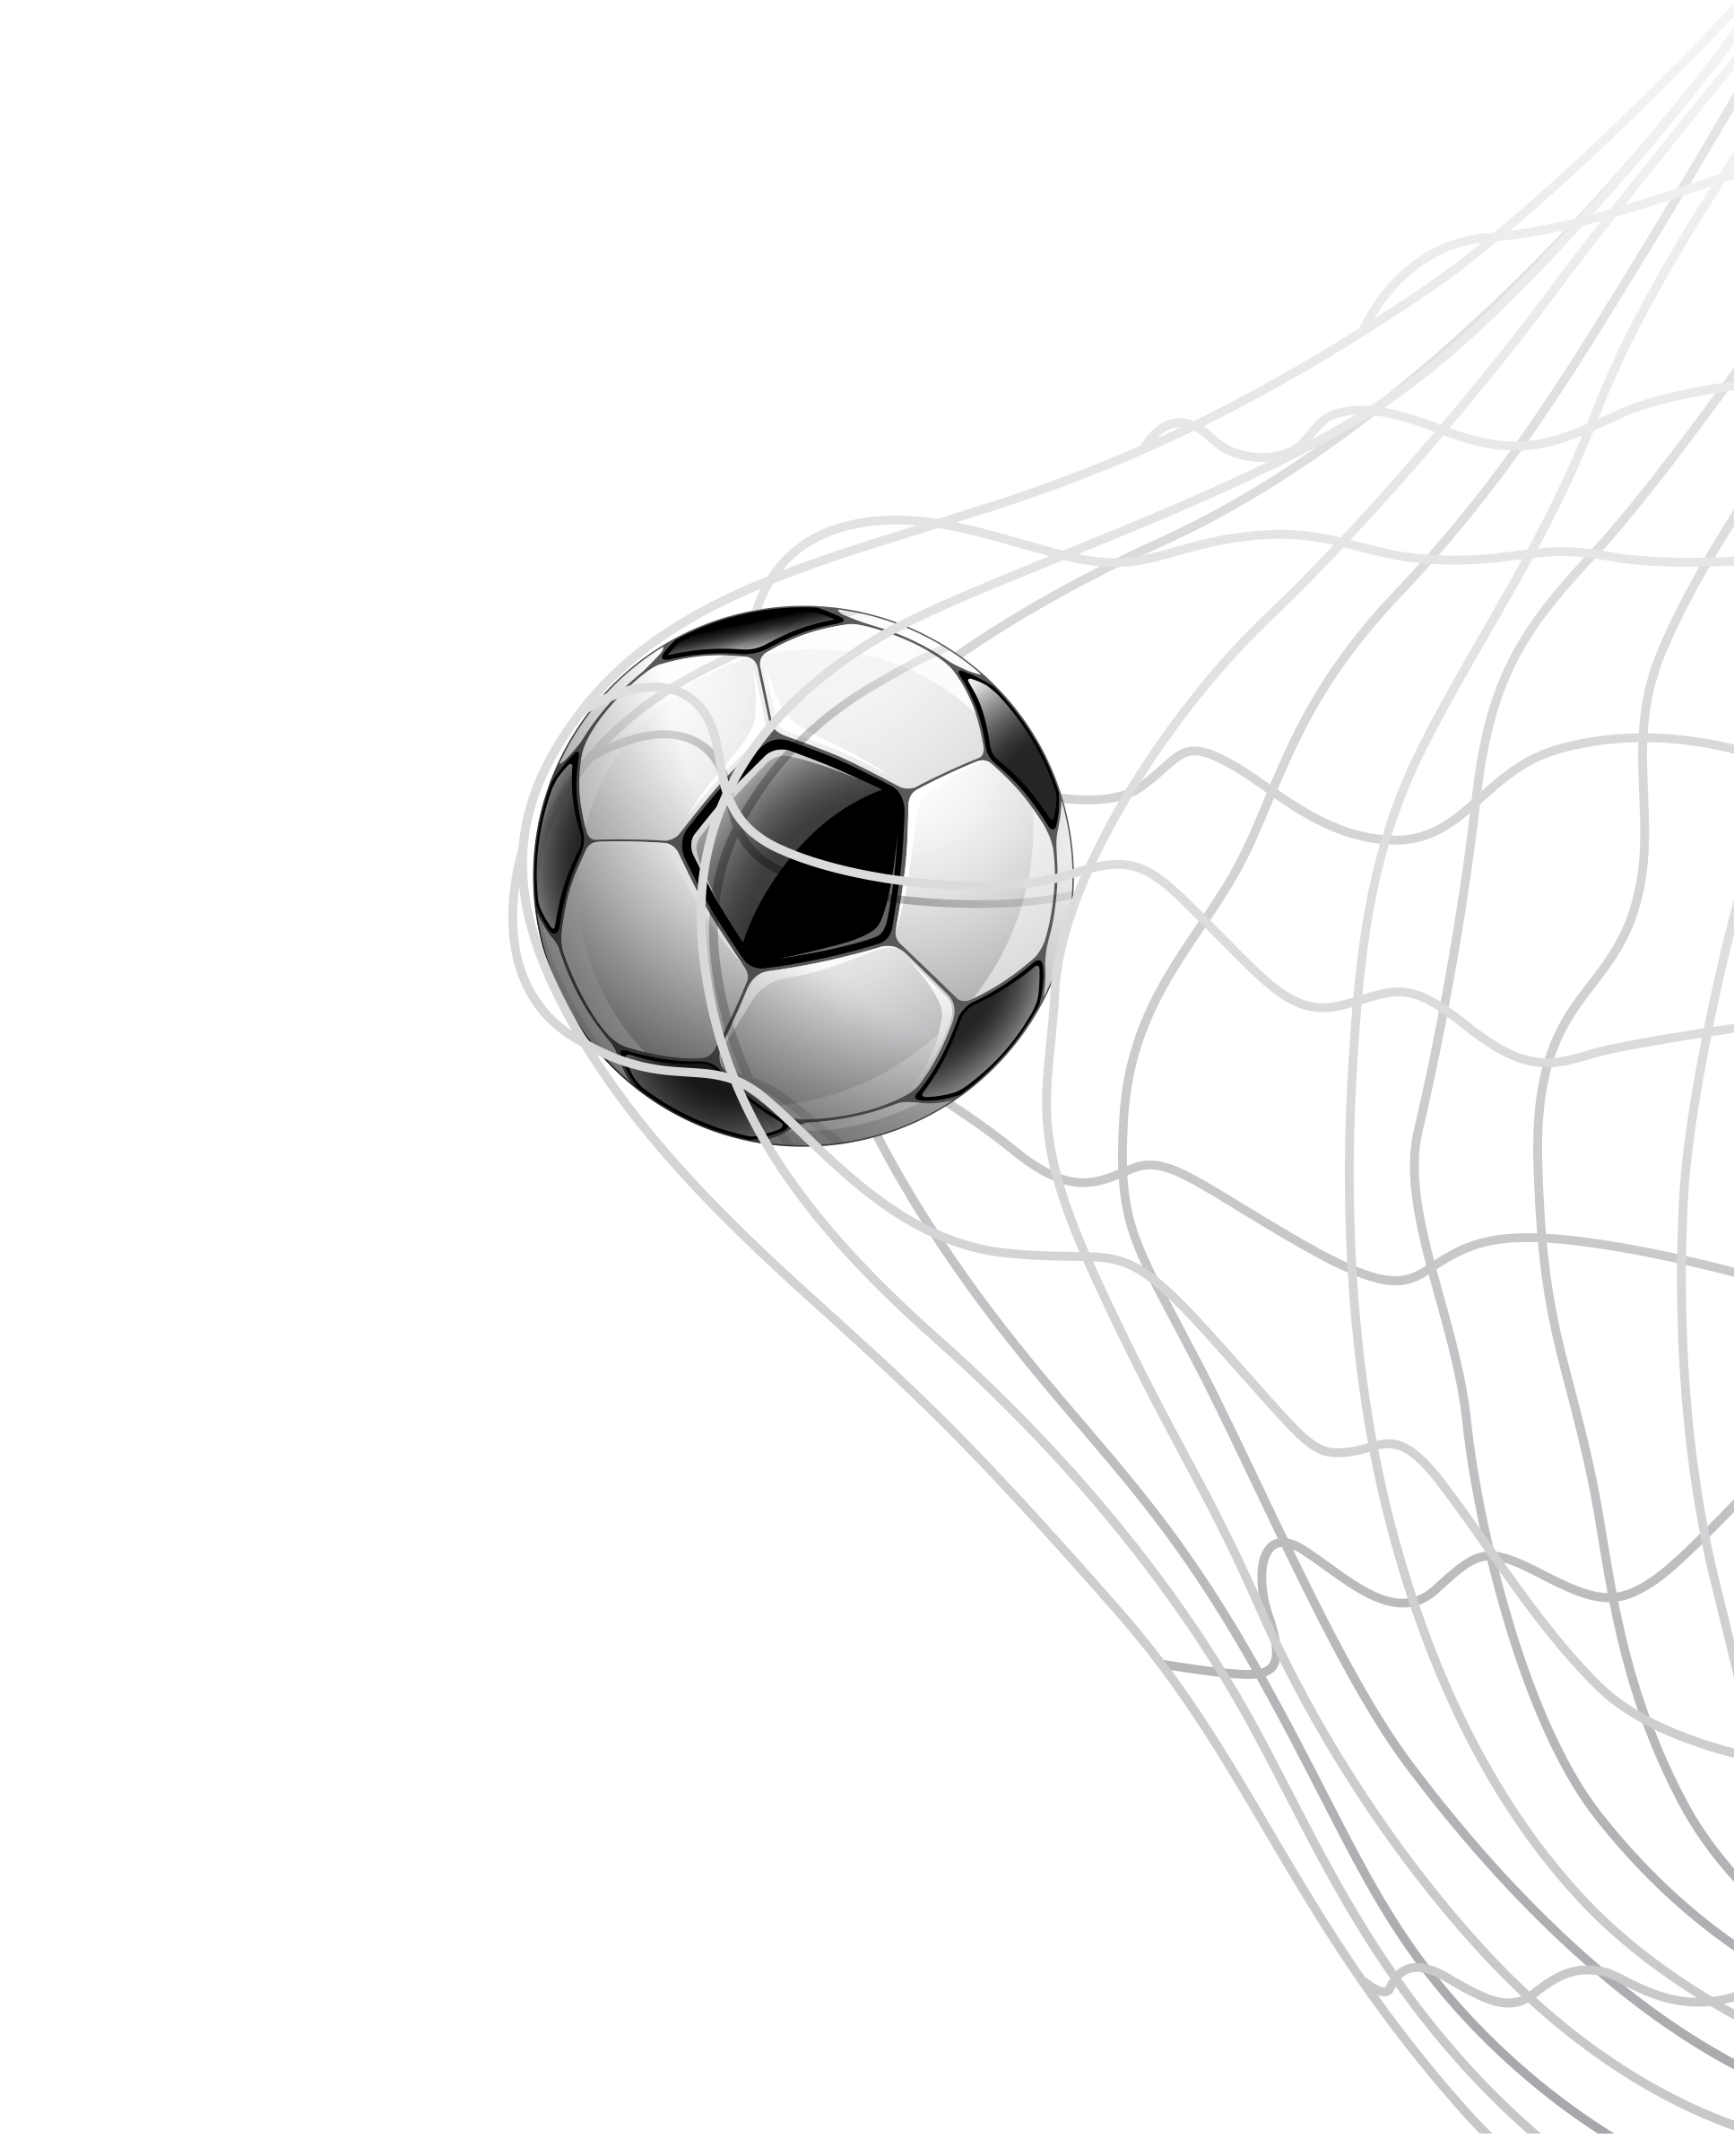 Goal vector drawn soccer. Football png images ball